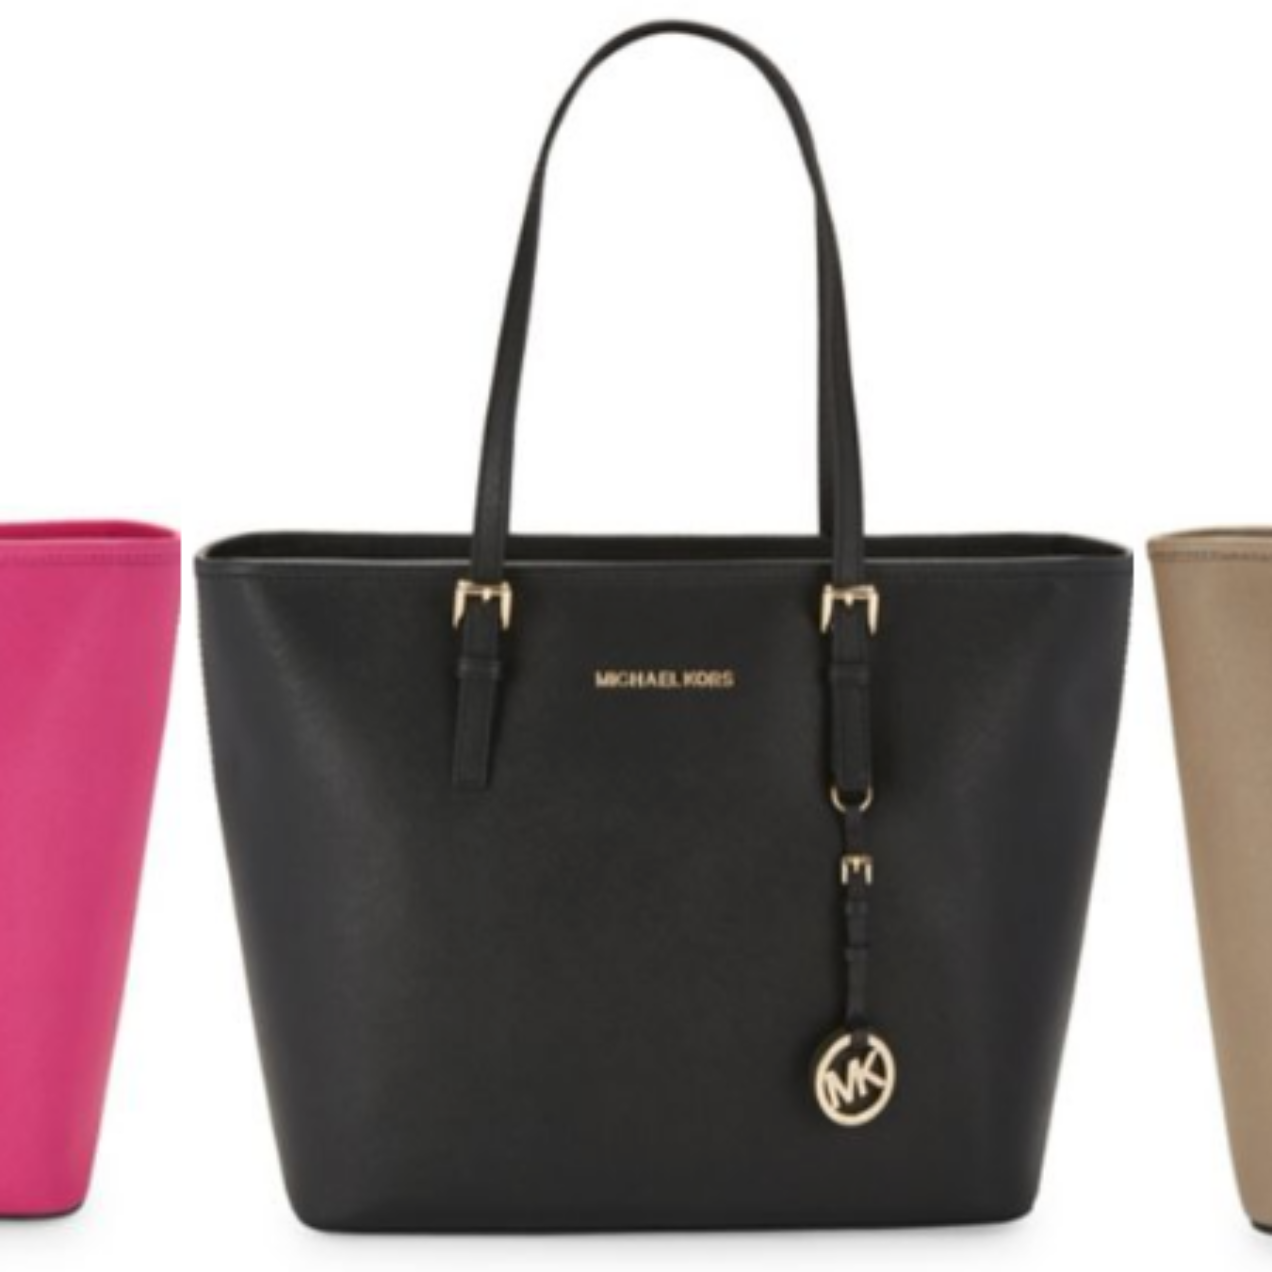 MICHAEL KORS Top-Zip Leather Tote $111.20 (Regular $278)